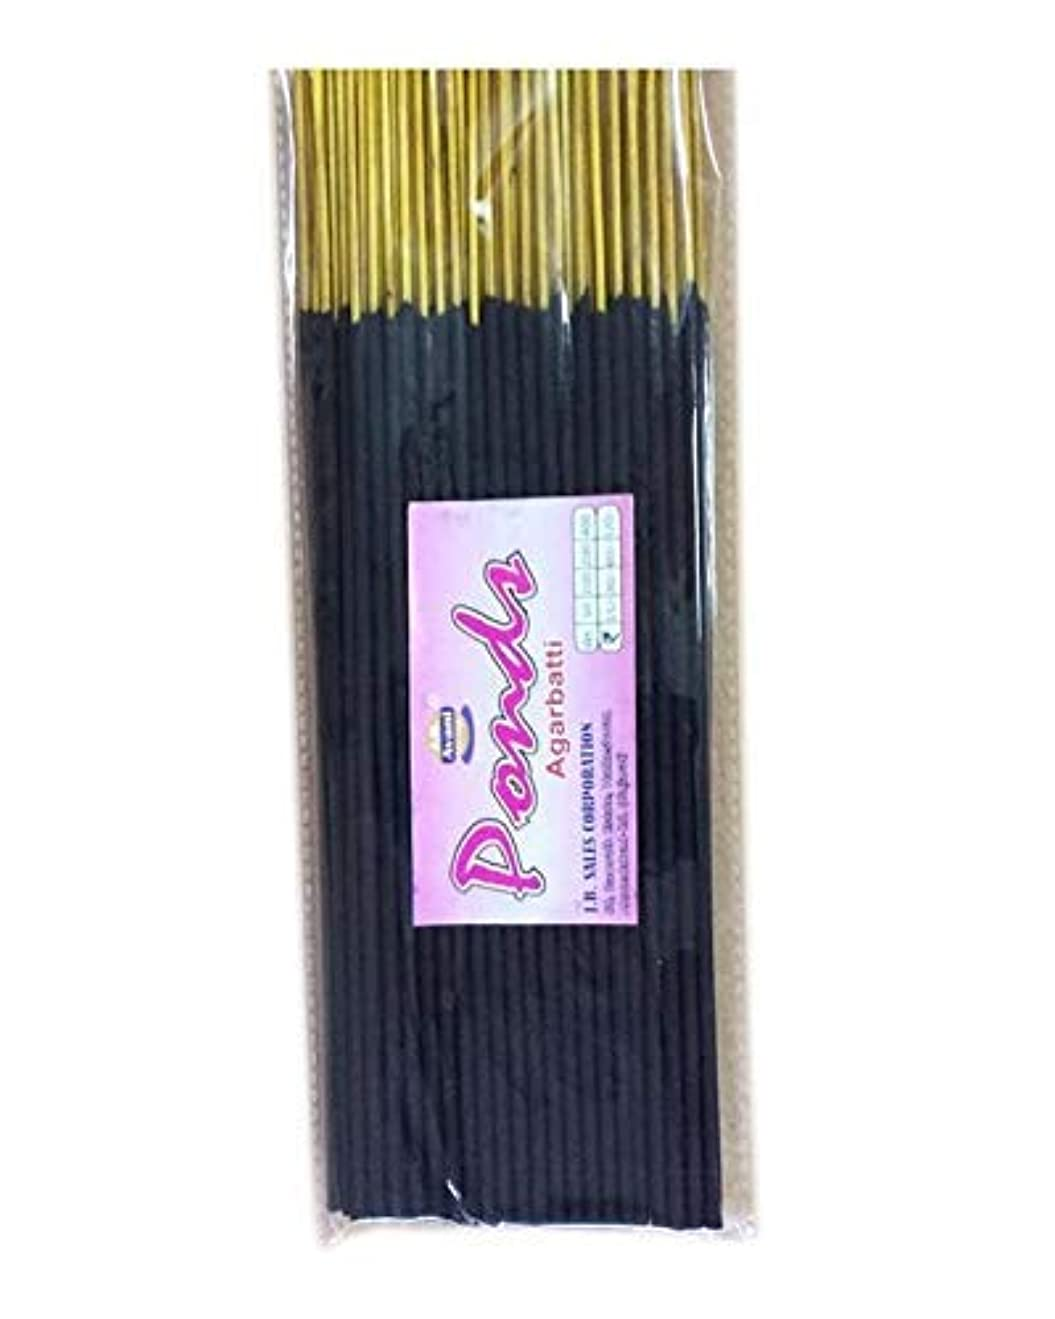 自転車記述する夢中Avani Ponds Incense Stick/Agarbatti (400 Gm. Pack)